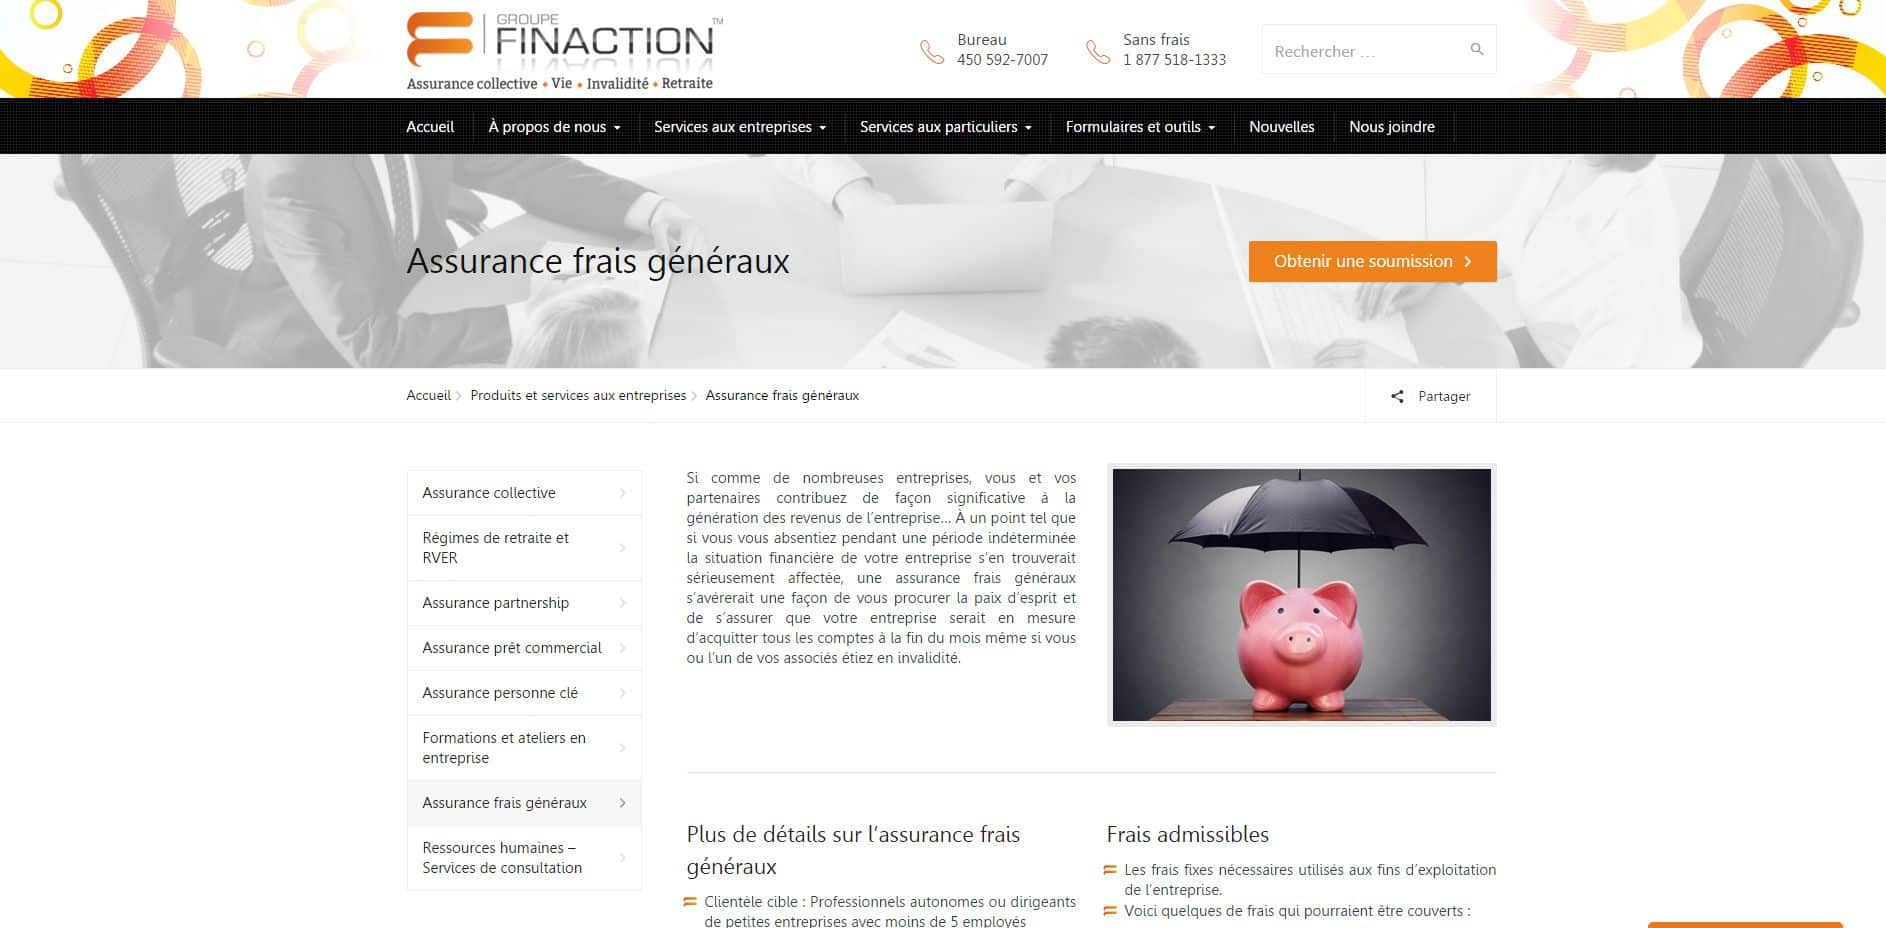 conception-web-groupe-finaction-14-1.jpg